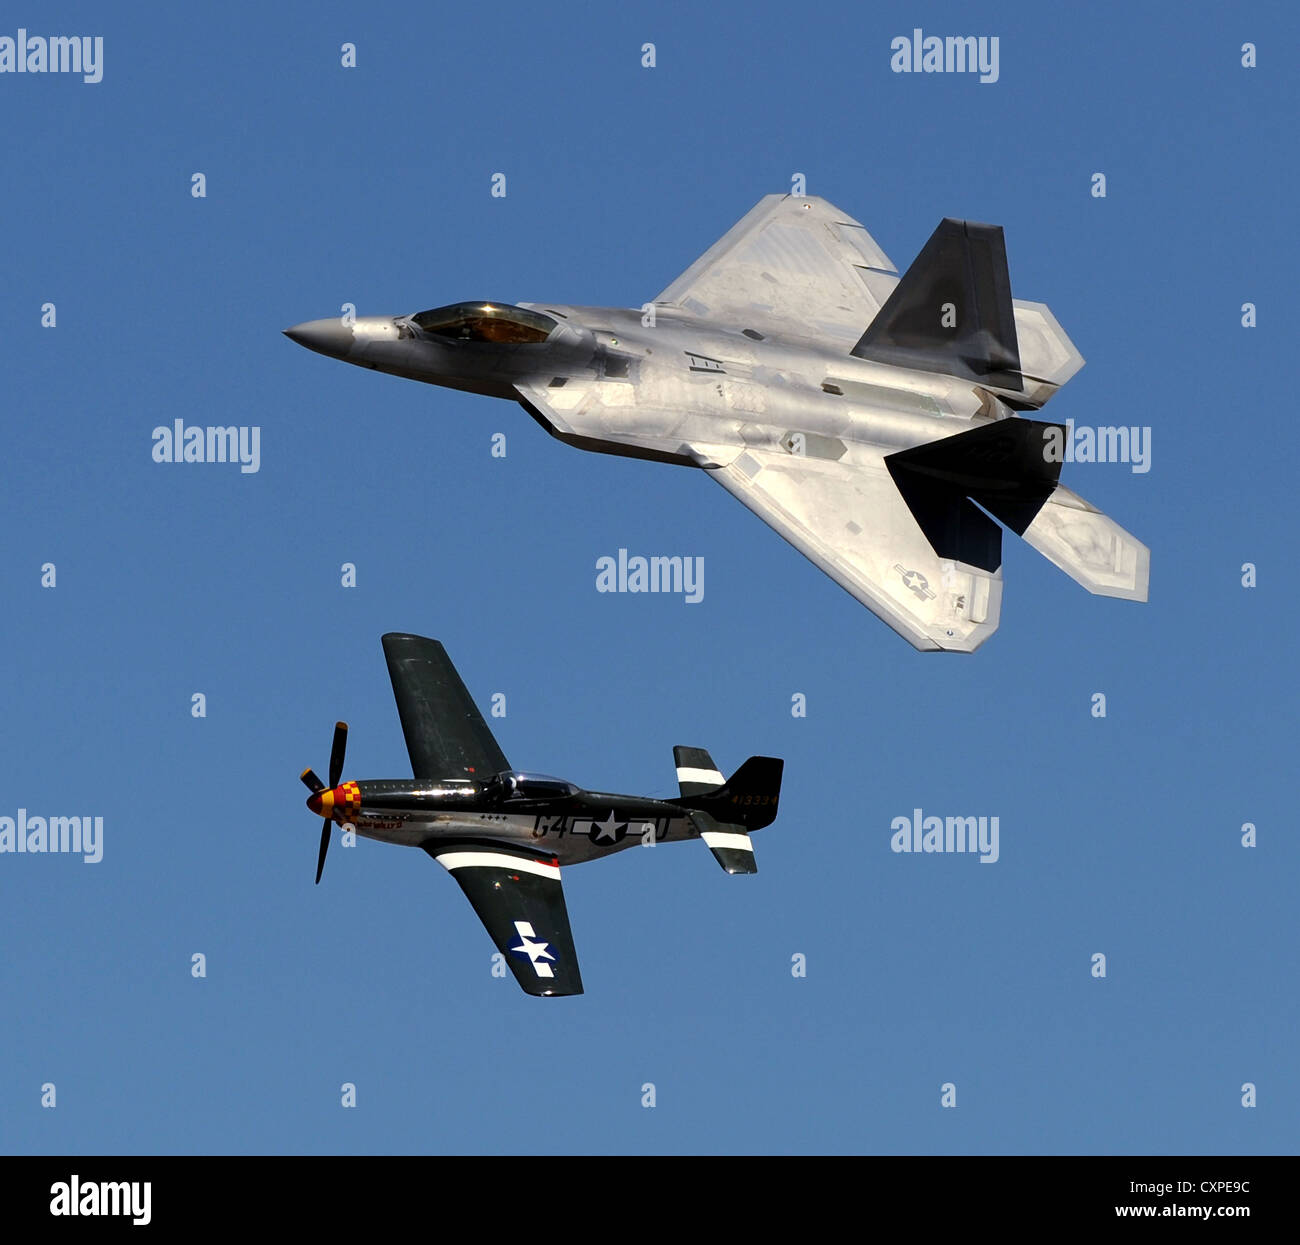 A vintage P-51 Mustang fighter aircraft and a US Air Force F-22 Raptor fighter aircraft perform a heritage flight - Stock Image